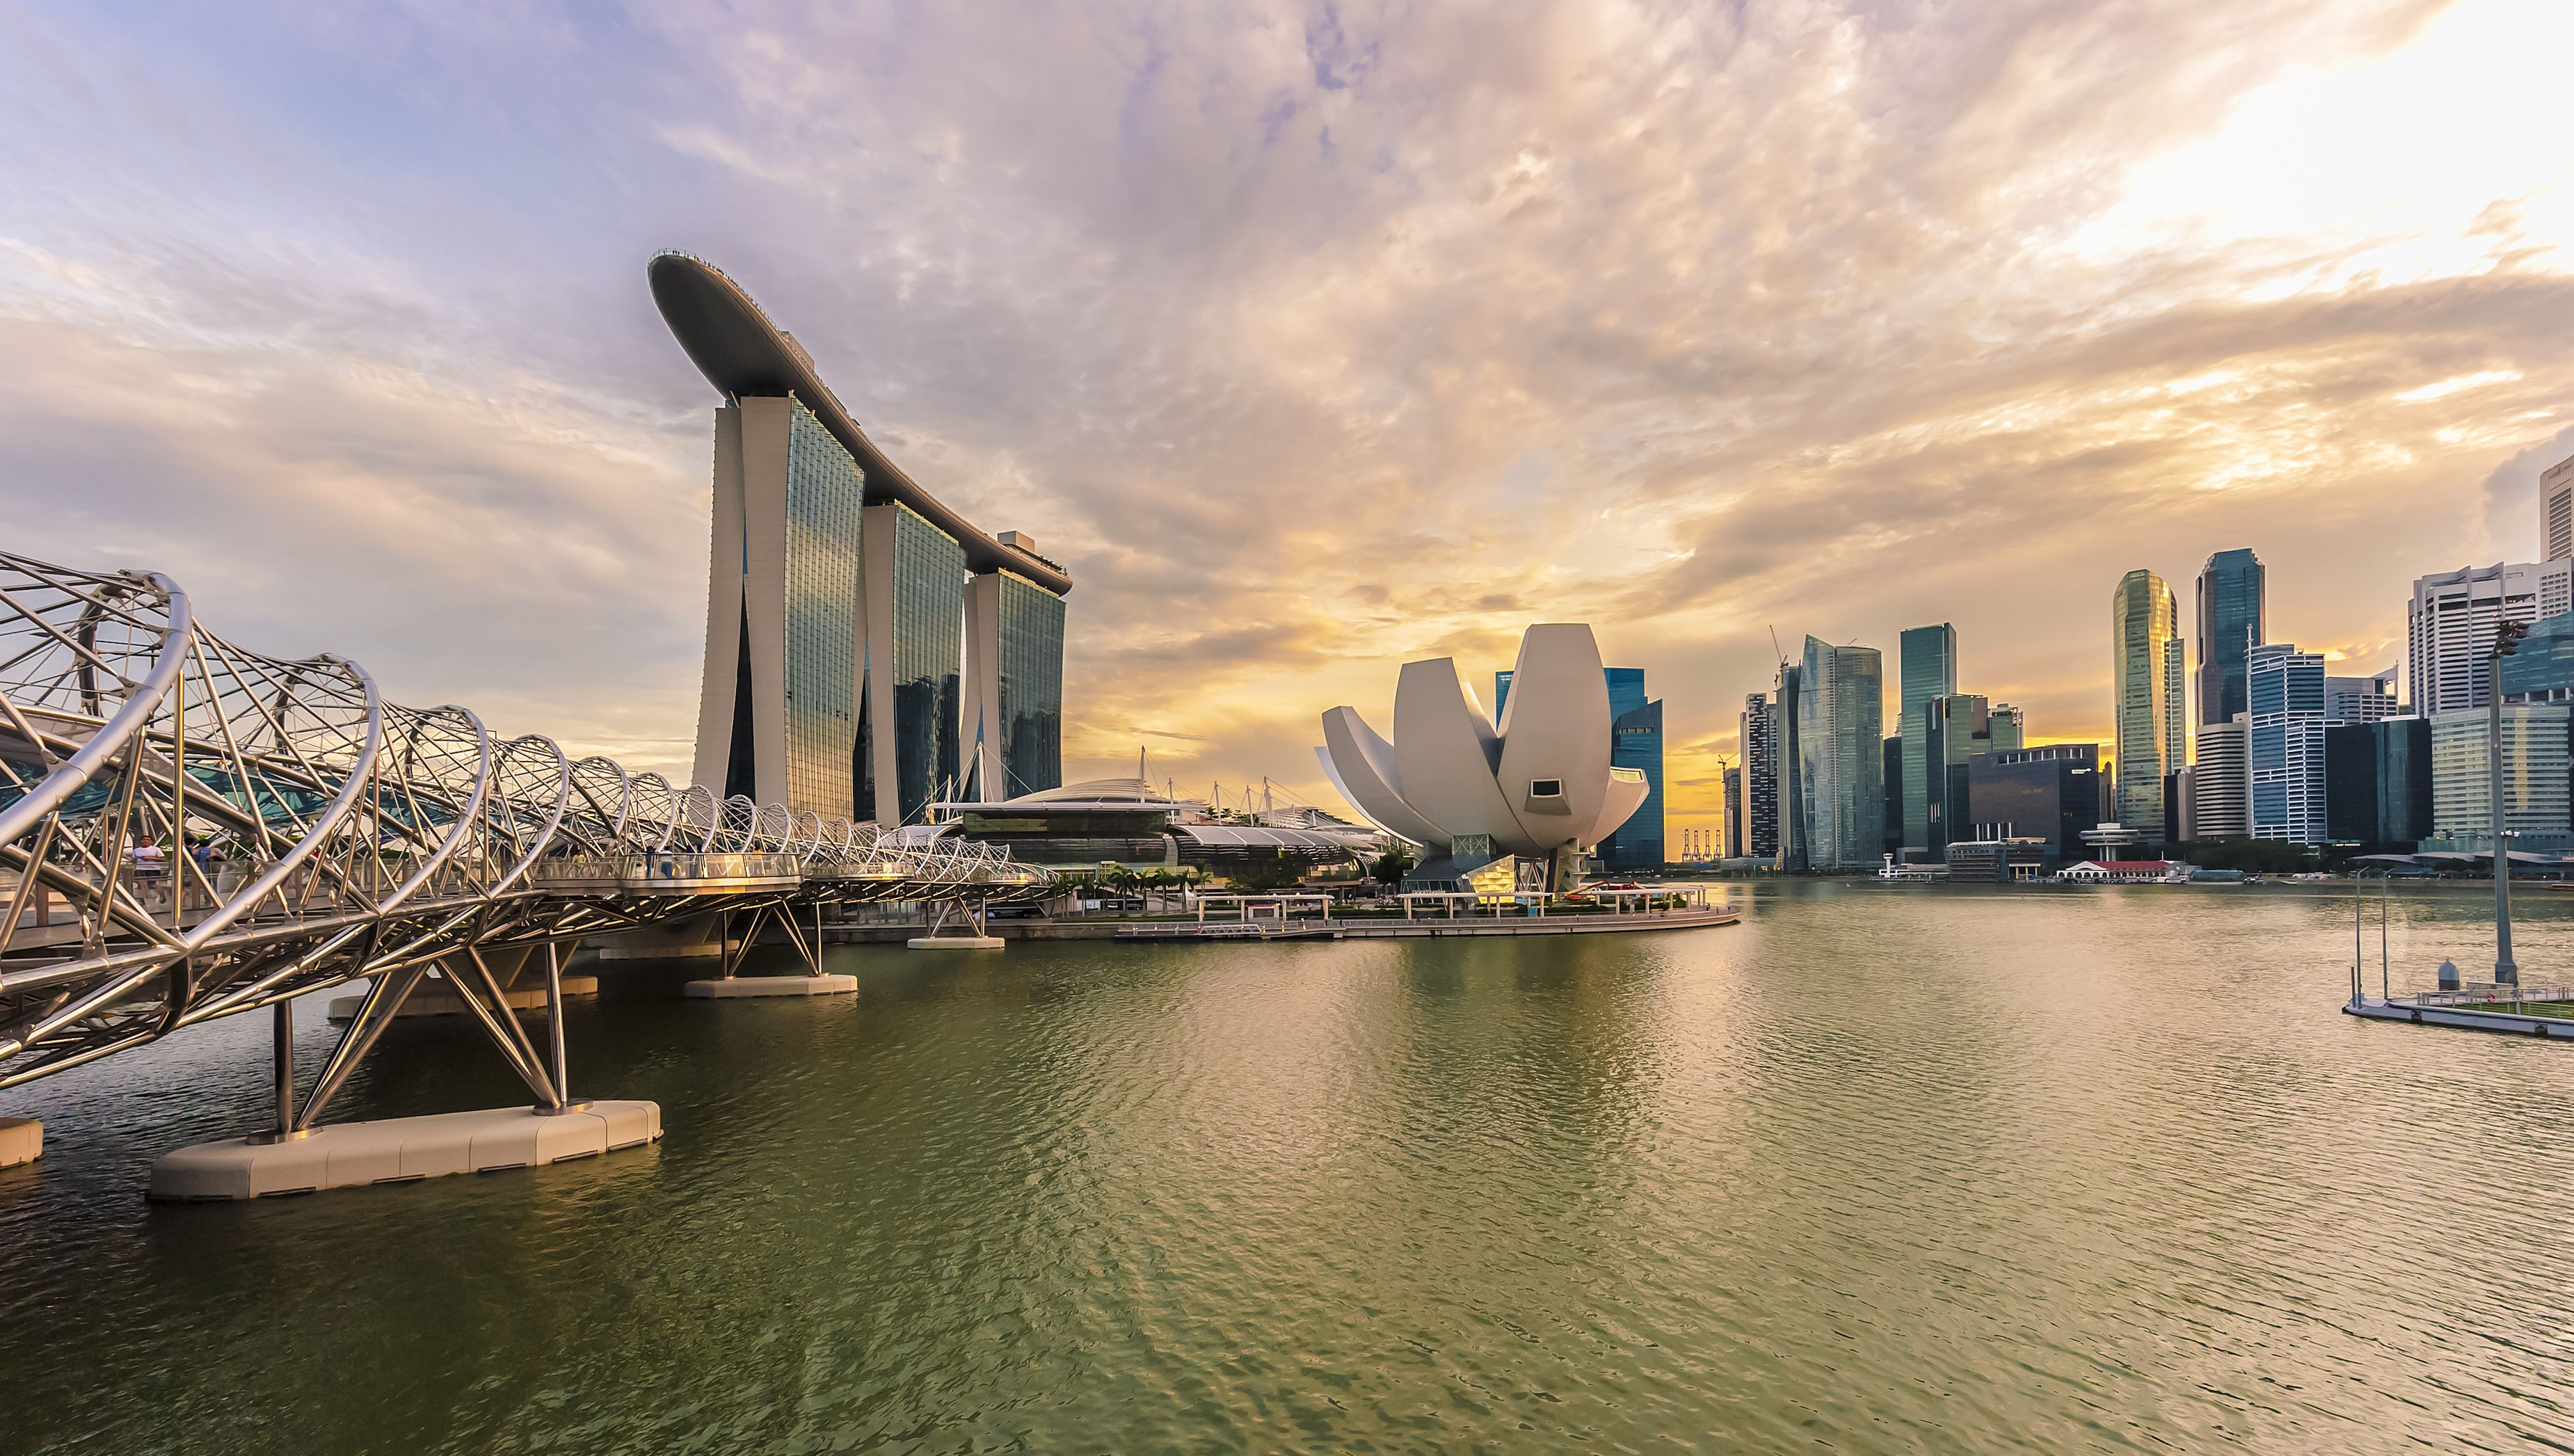 Singapore city skyline and waterfront at sunset